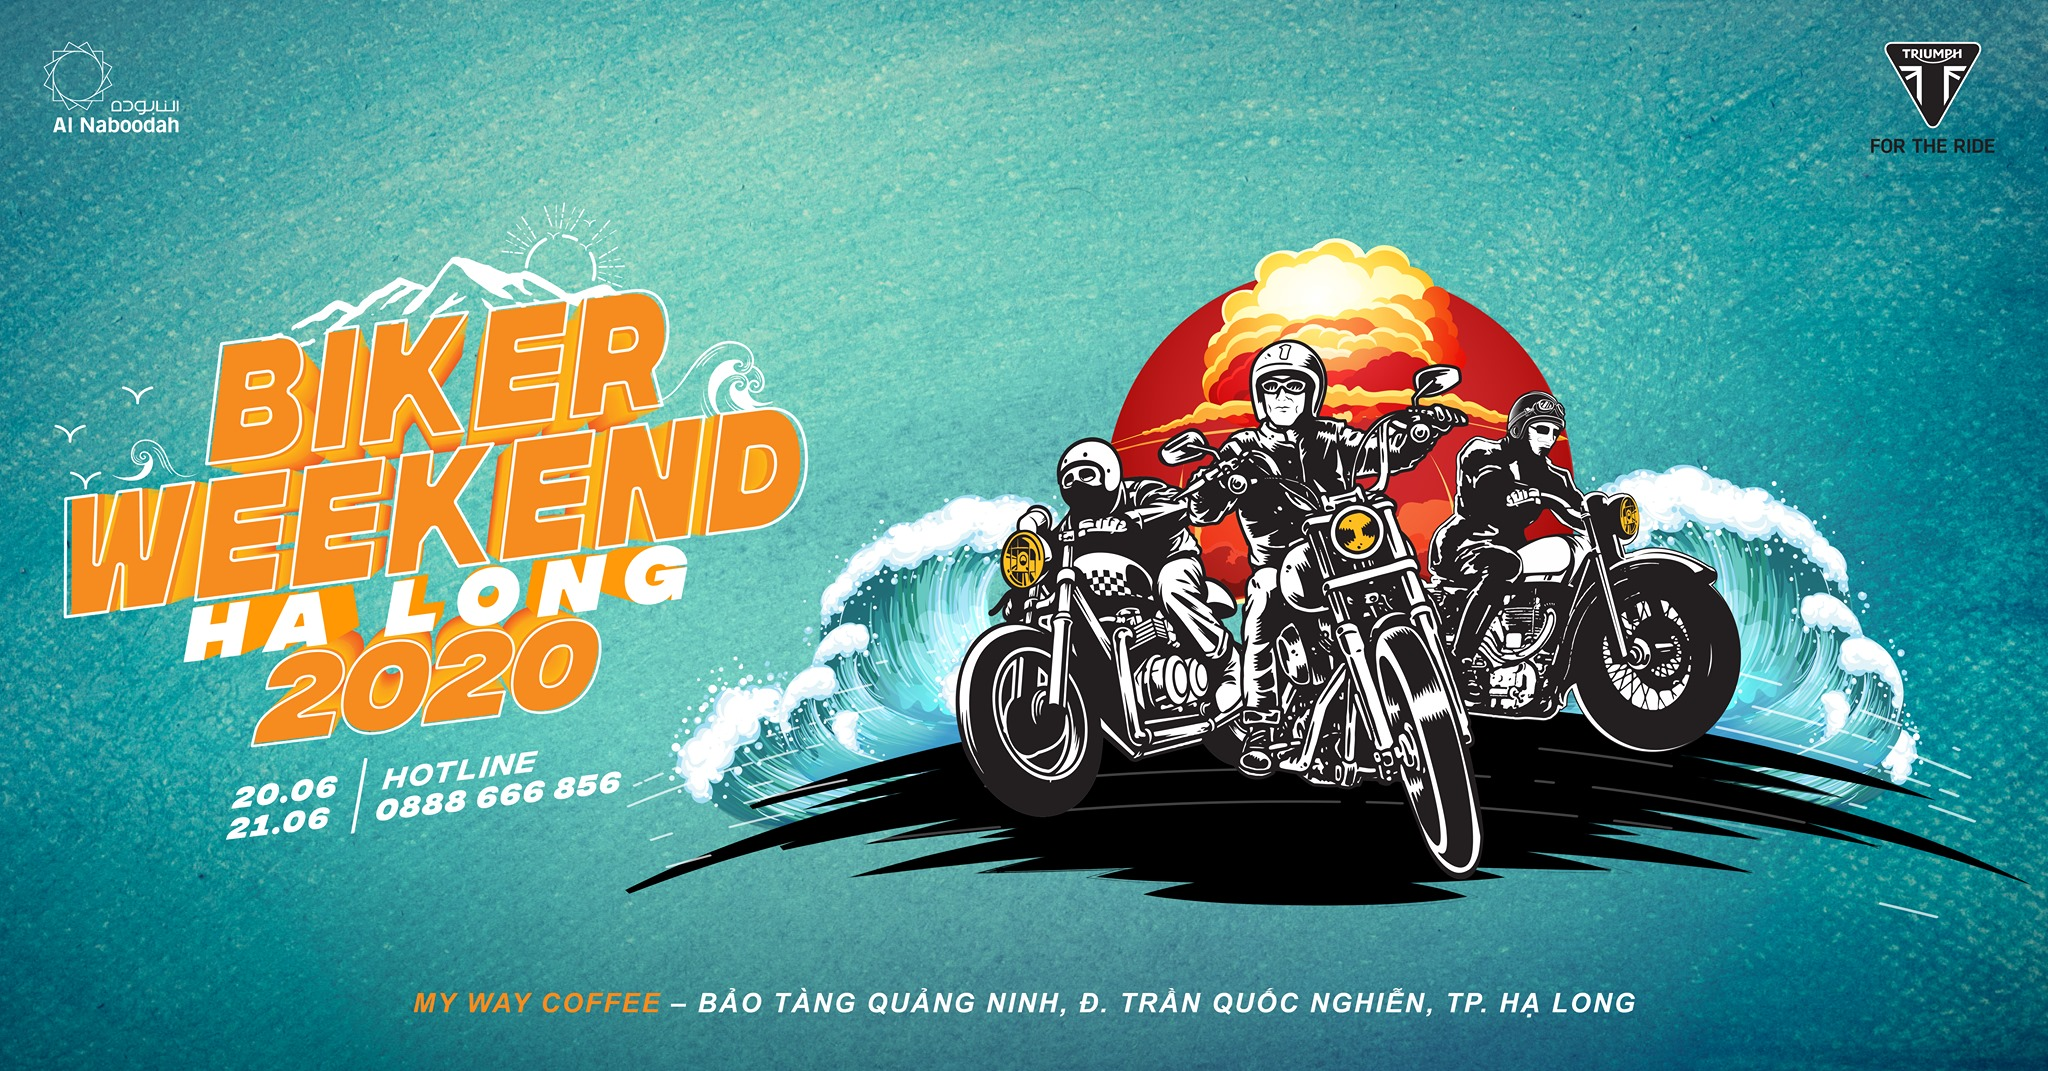 Biker Weekend Ha Long 2020